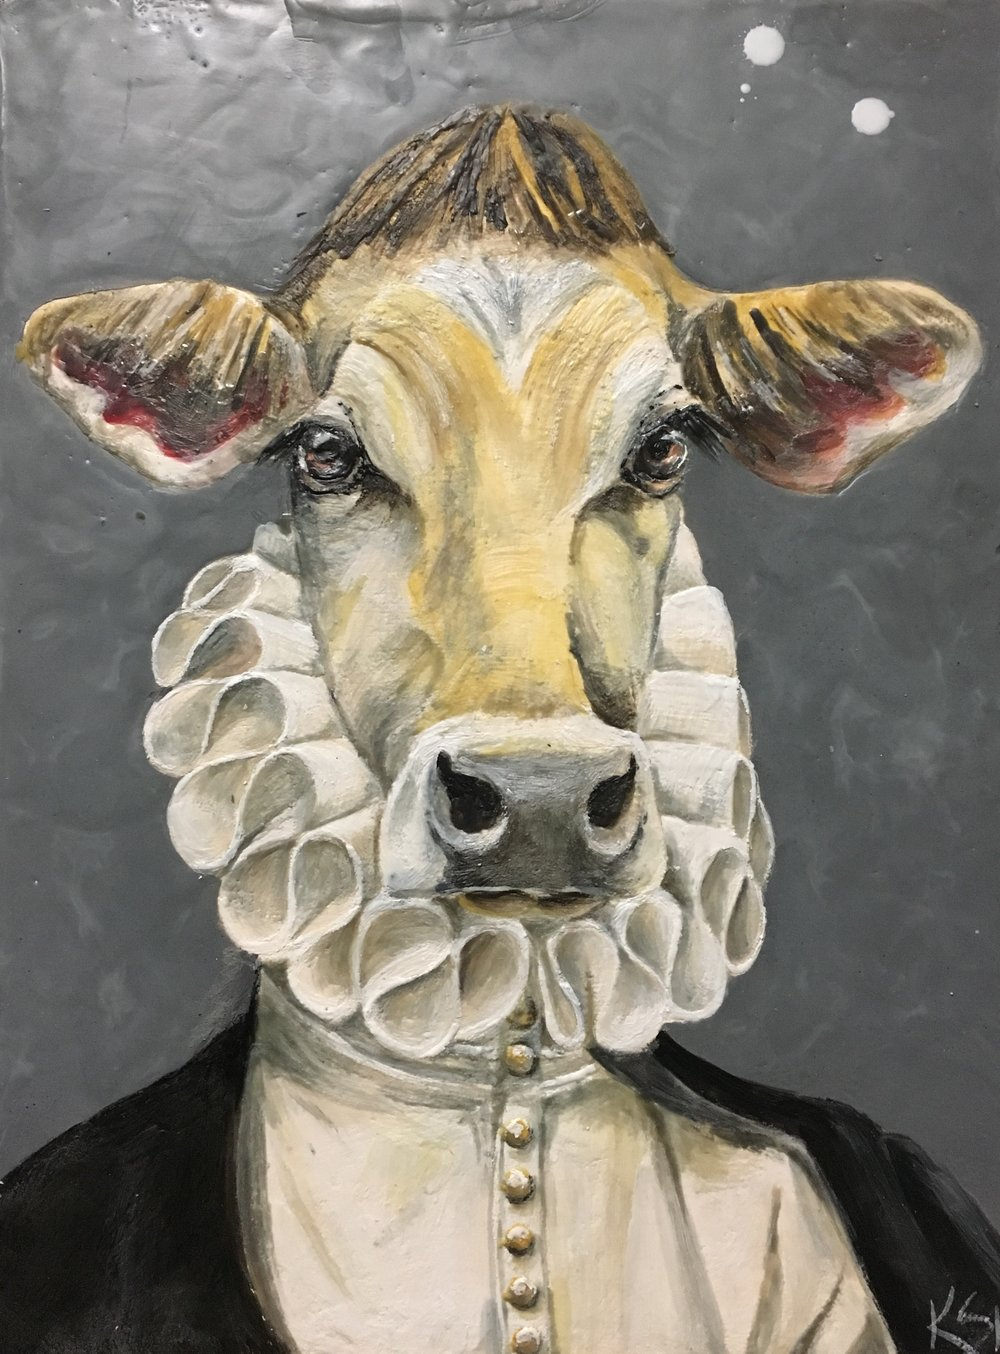 Baron of Bovine 2017 12x16 Encaustic on Panel